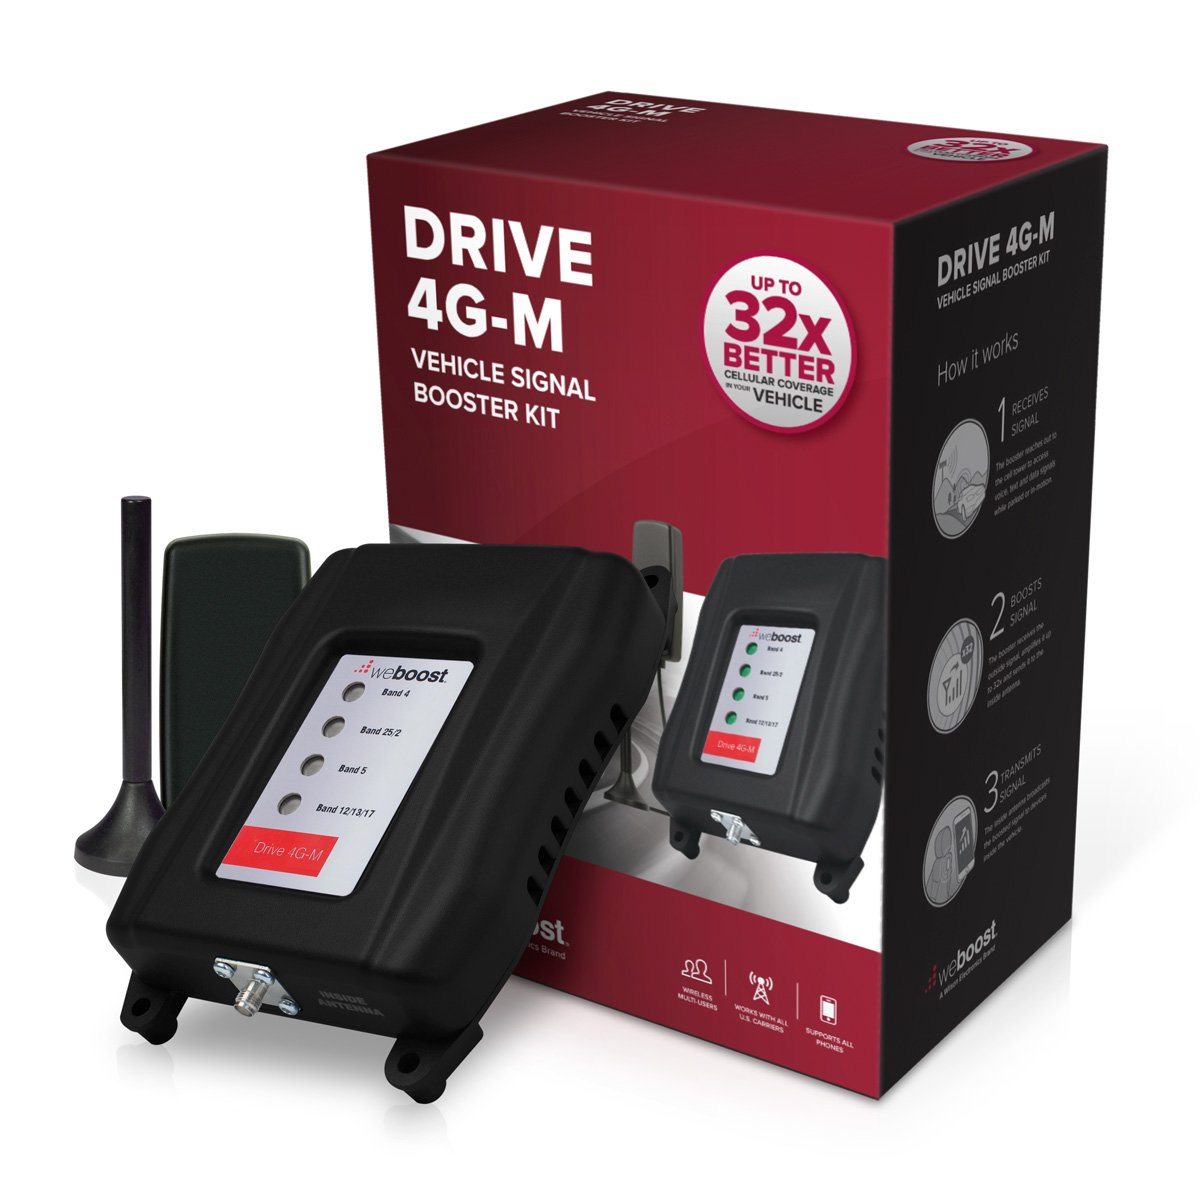 weBoost Drive 4G-M (470121) Cell Phone Signal Booster for Your Car & Truck - Verizon, AT&T, T-Mobile, Sprint - Enhance Your Cell Phone Signal up to 32x by weBoost